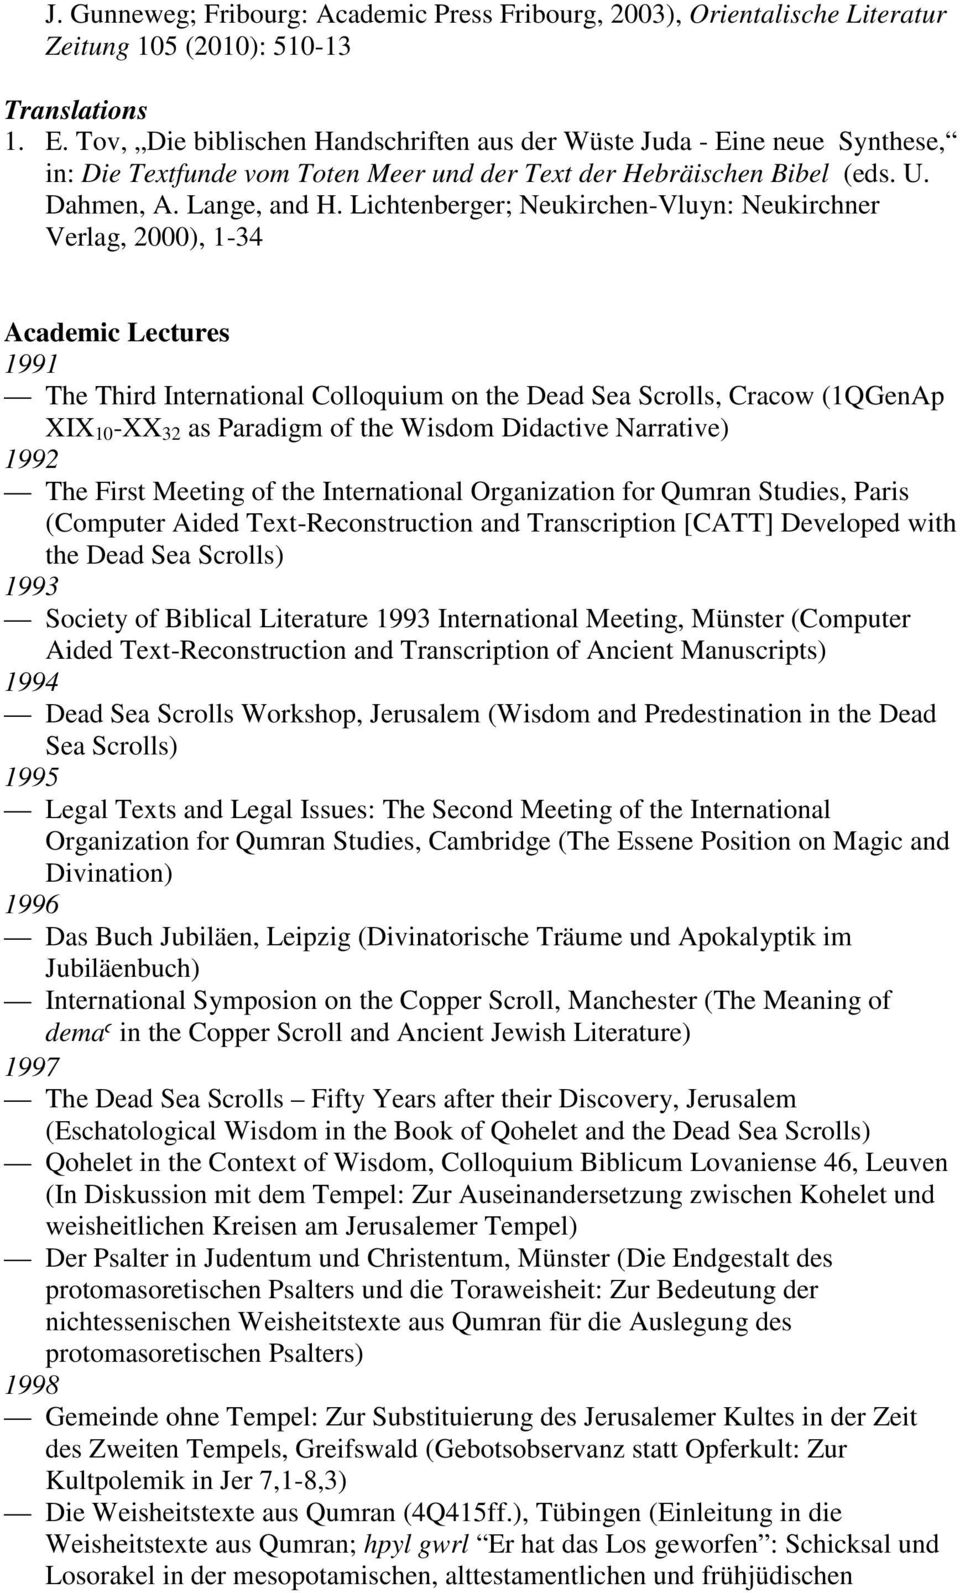 Lichtenberger; Neukirchen-Vluyn: Neukirchner Verlag, 2000), 1-34 Academic Lectures 1991 The Third International Colloquium on the Dead Sea Scrolls, Cracow (1QGenAp XIX 10 -XX 32 as Paradigm of the